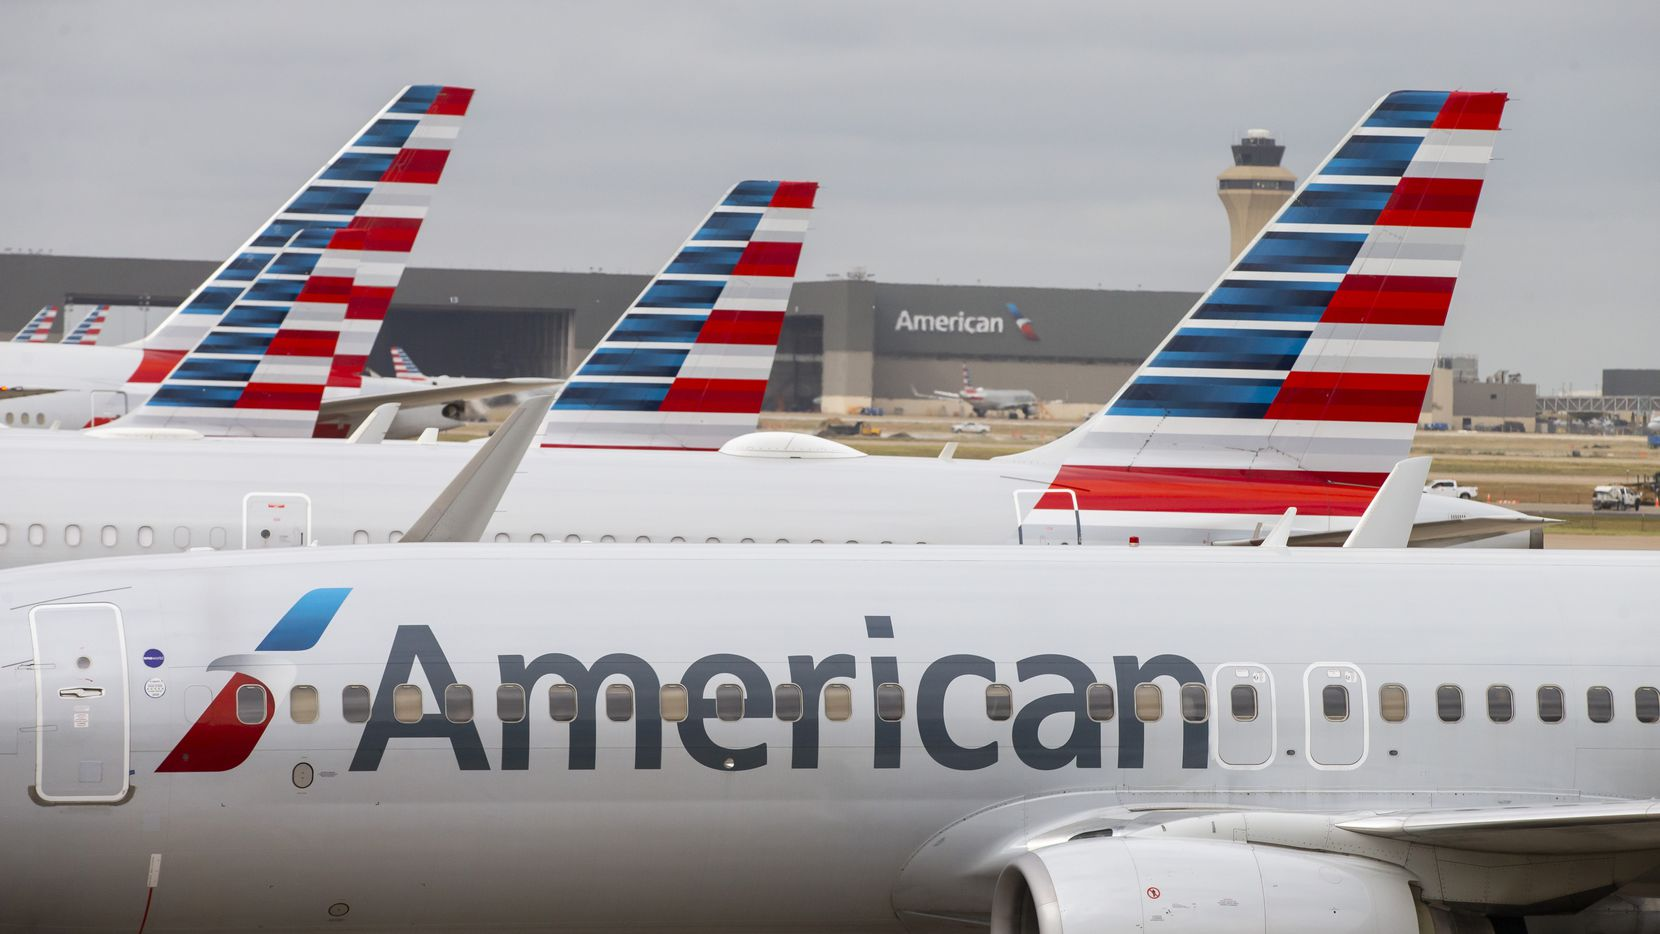 American Airlines planes parked at Terminal D at DFW Airport, Wednesday, October 21, 2020. (Brandon Wade/Special Contributor)